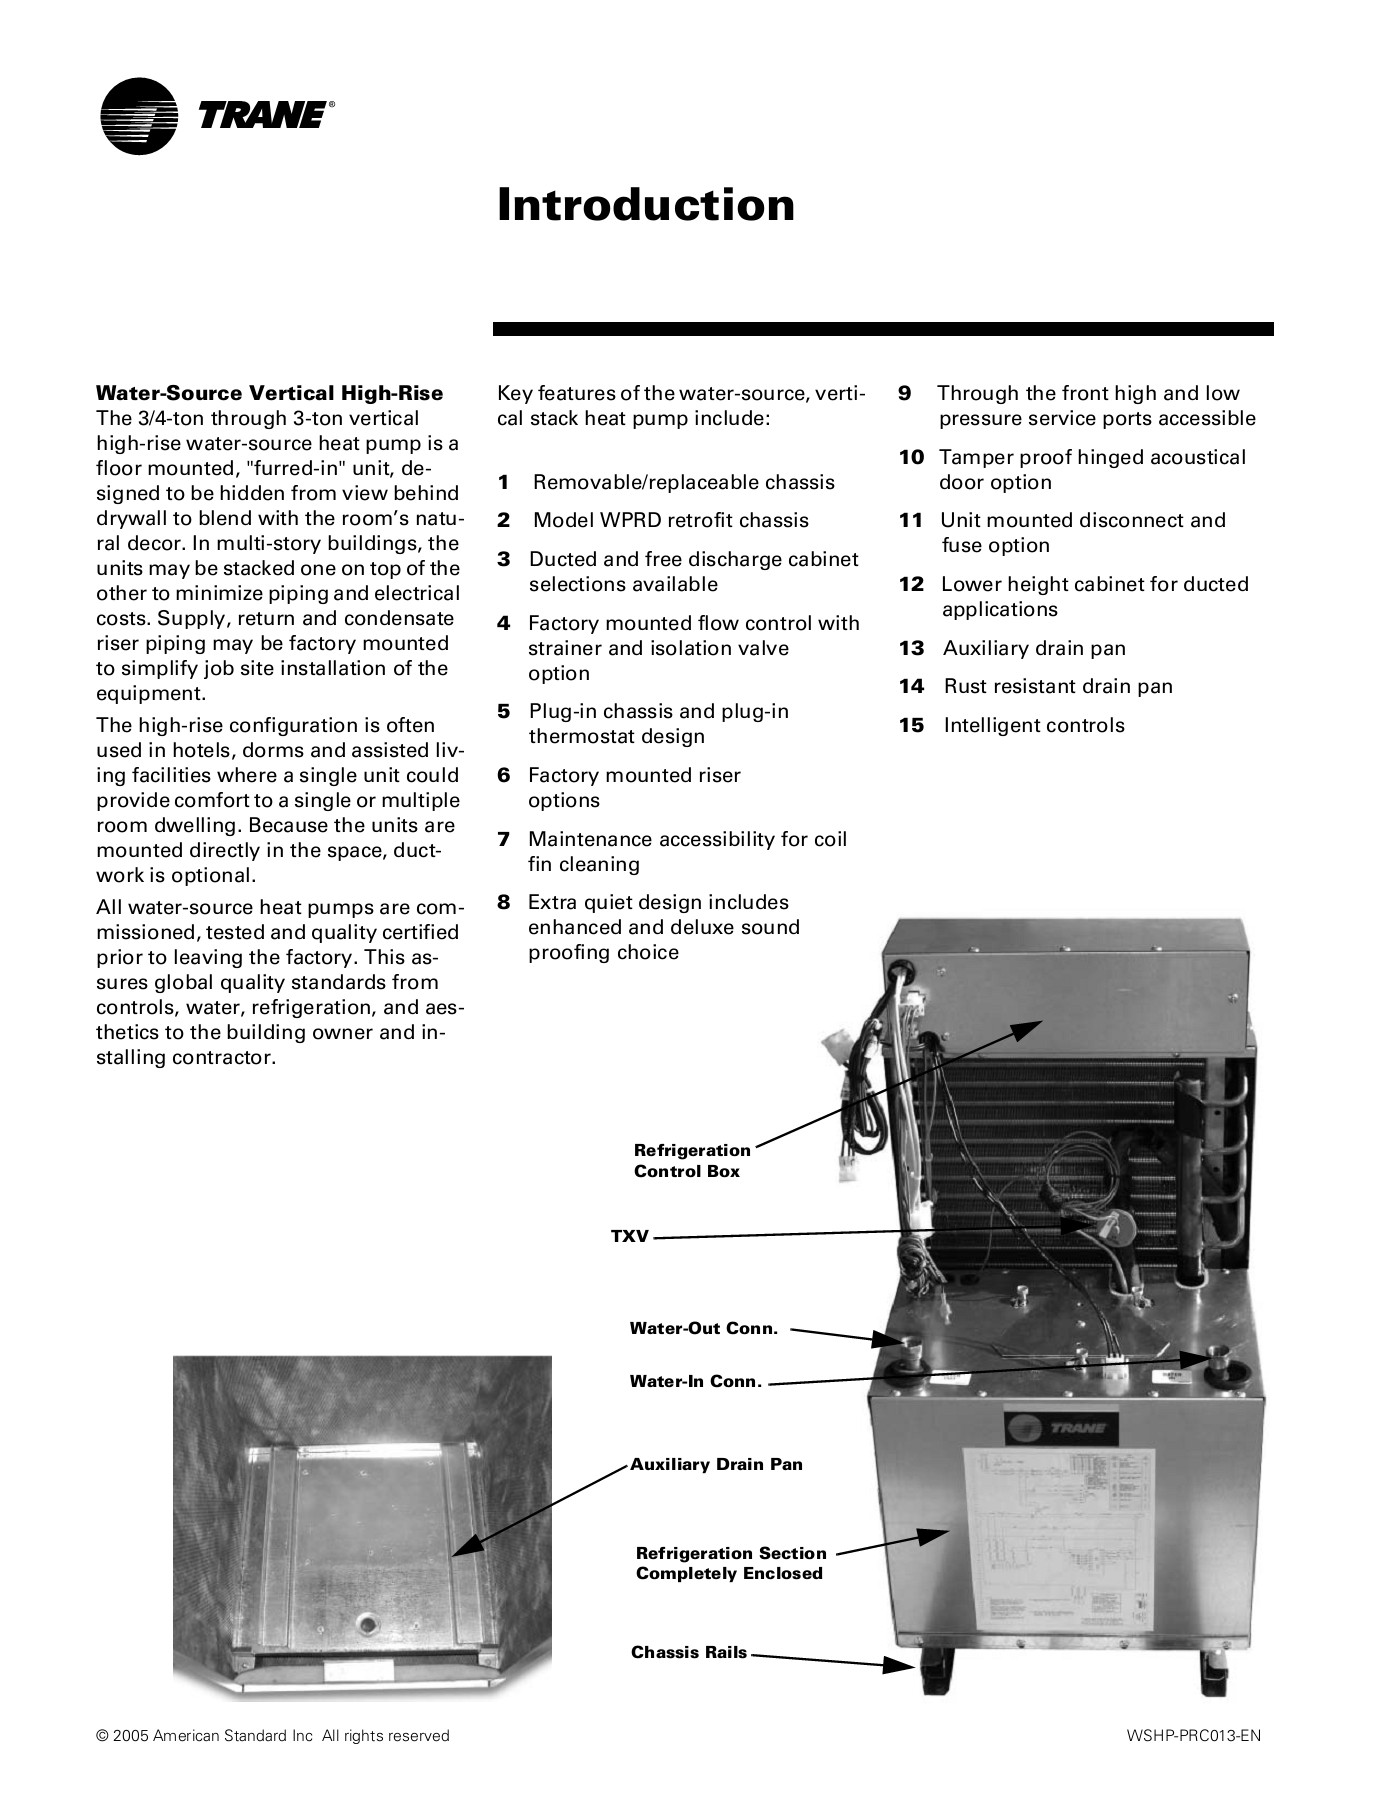 High Efficiency Vertical Stack Water Source Comfort System Pages 1 50 Text Version Anyflip